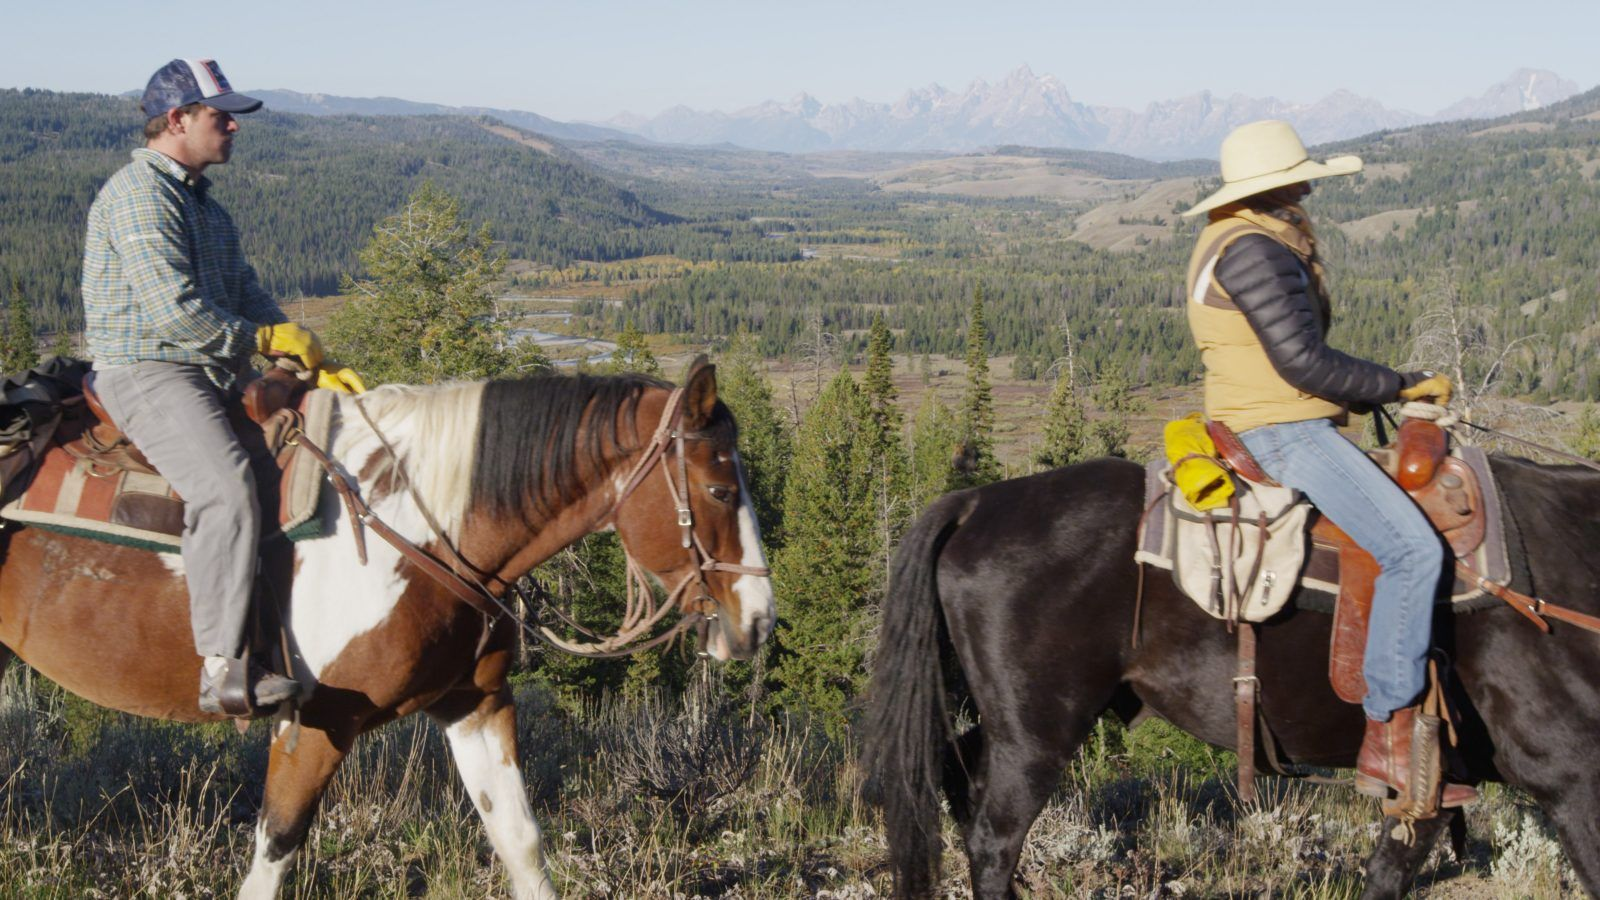 Turpin Meadow Ranch is a luxury dude ranch in Wyoming near Jackson Hole, featuring outdoor activities, cozy cabins, upscale amenities and on site dining.